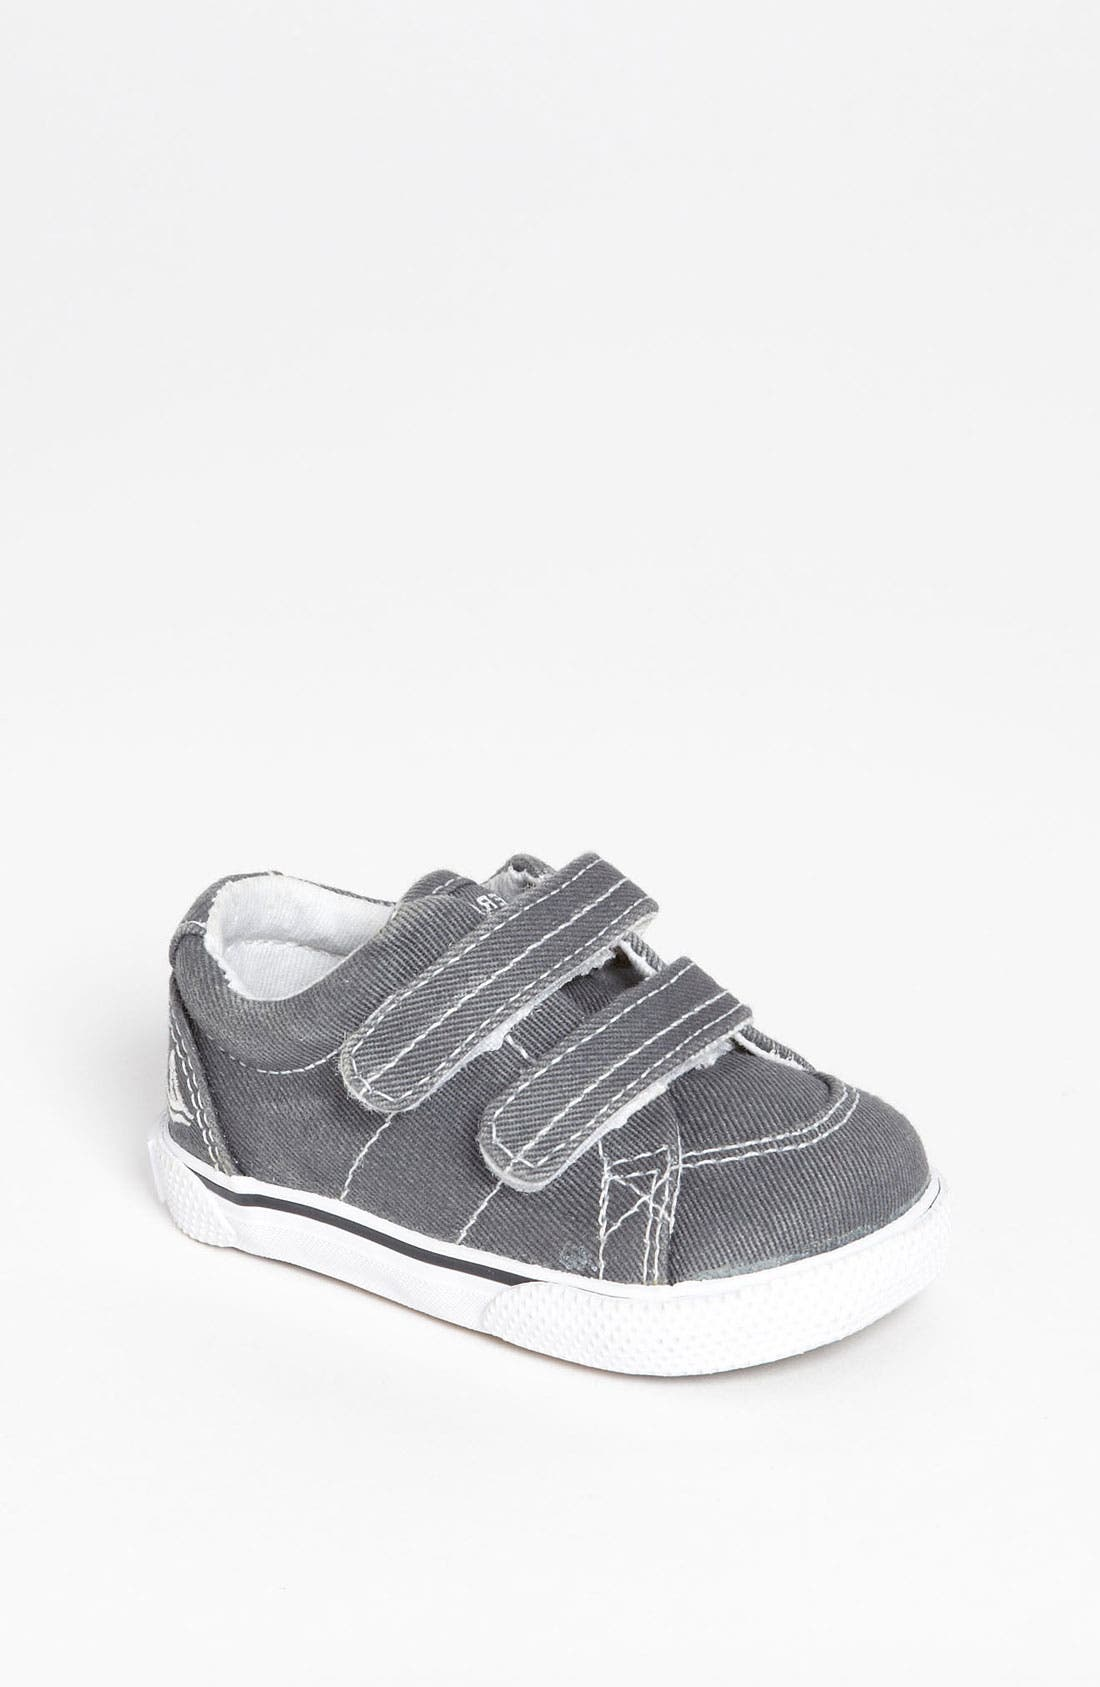 Alternate Image 1 Selected - Sperry Kids 'Halyard' Crib Shoe (Baby)